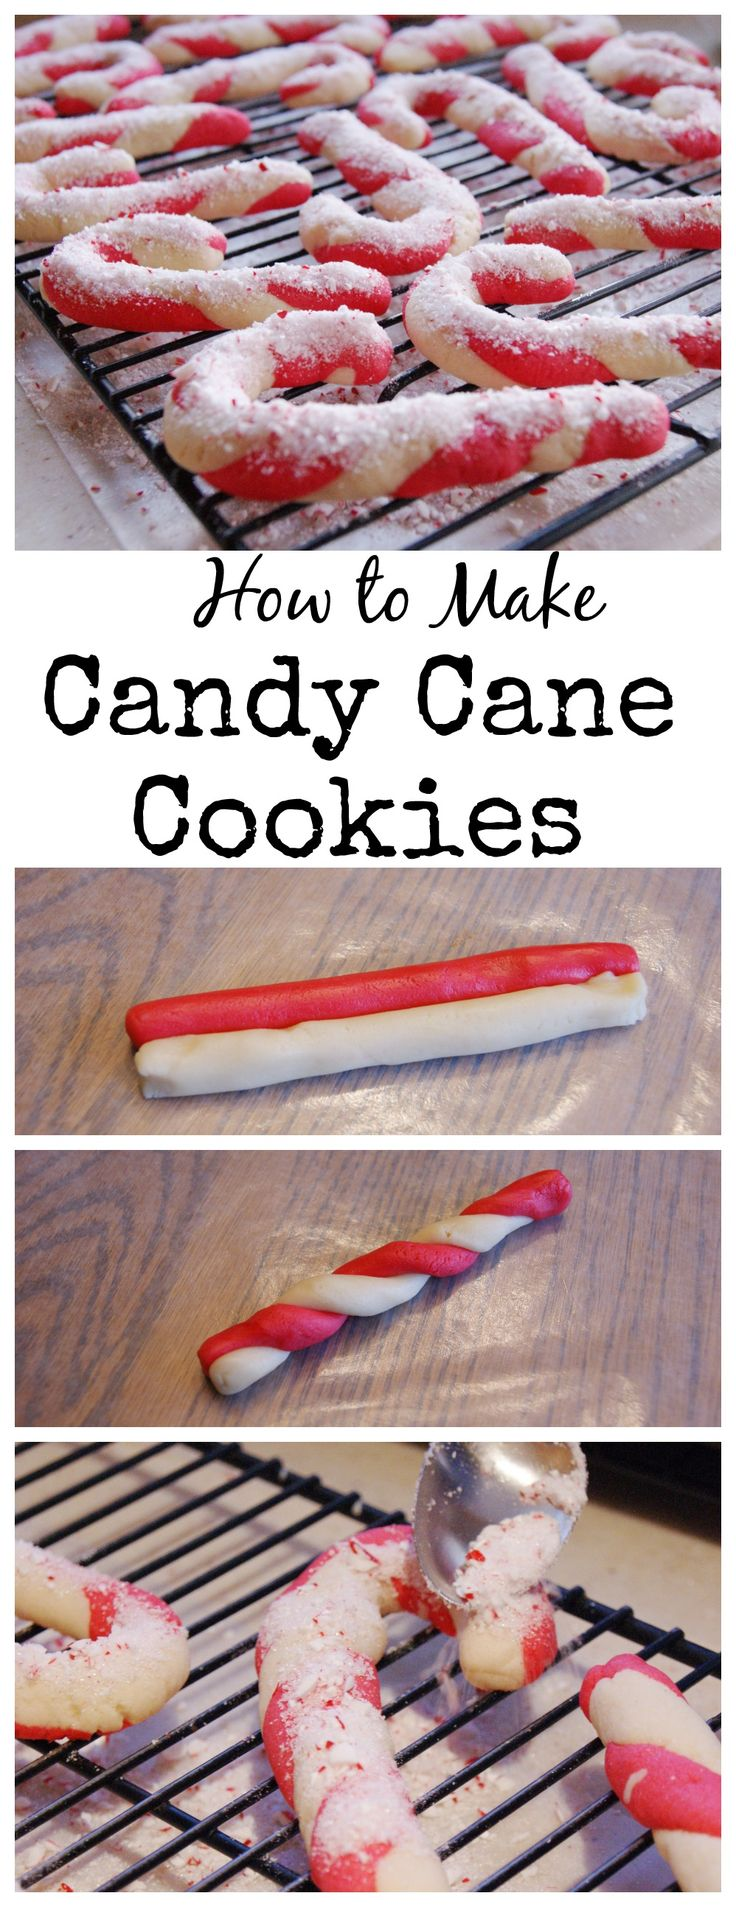 How to Make Classic Candy Cane Cookies for Christmas ~ step-by-step. www.thekitchenismyplayground.com